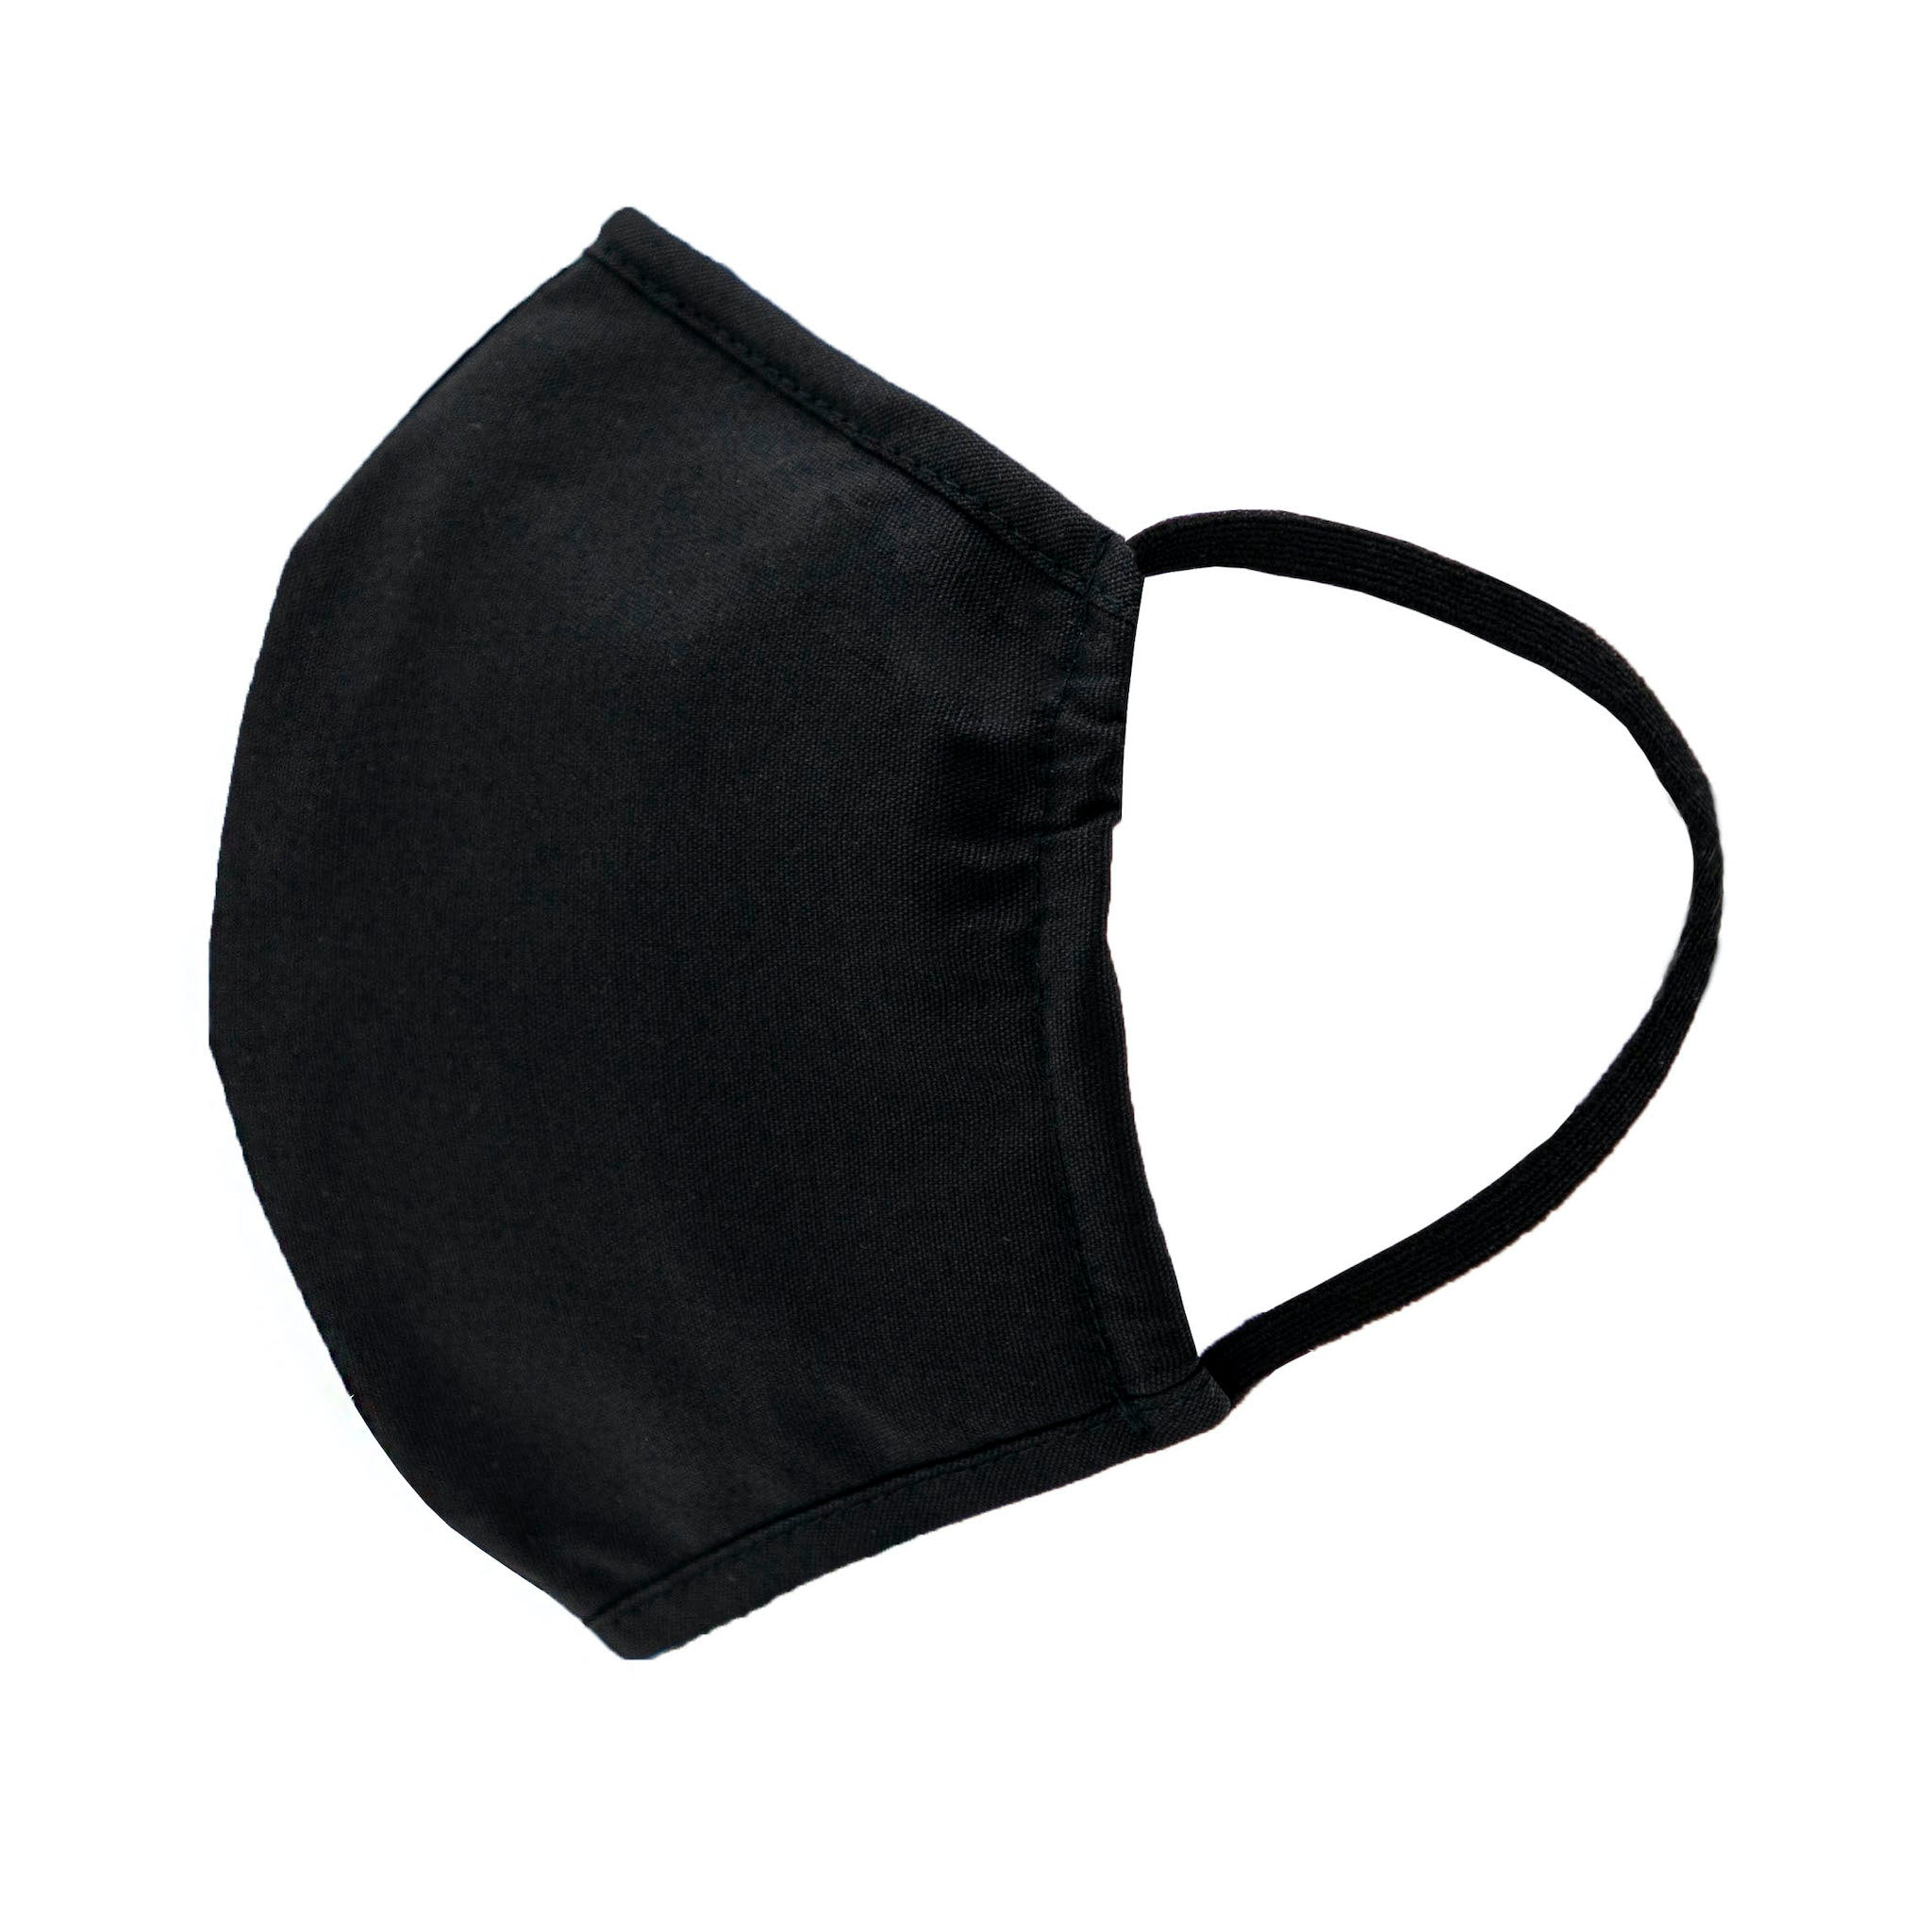 Wrapture Masks Black Face Mask Antimicrobial & Washable